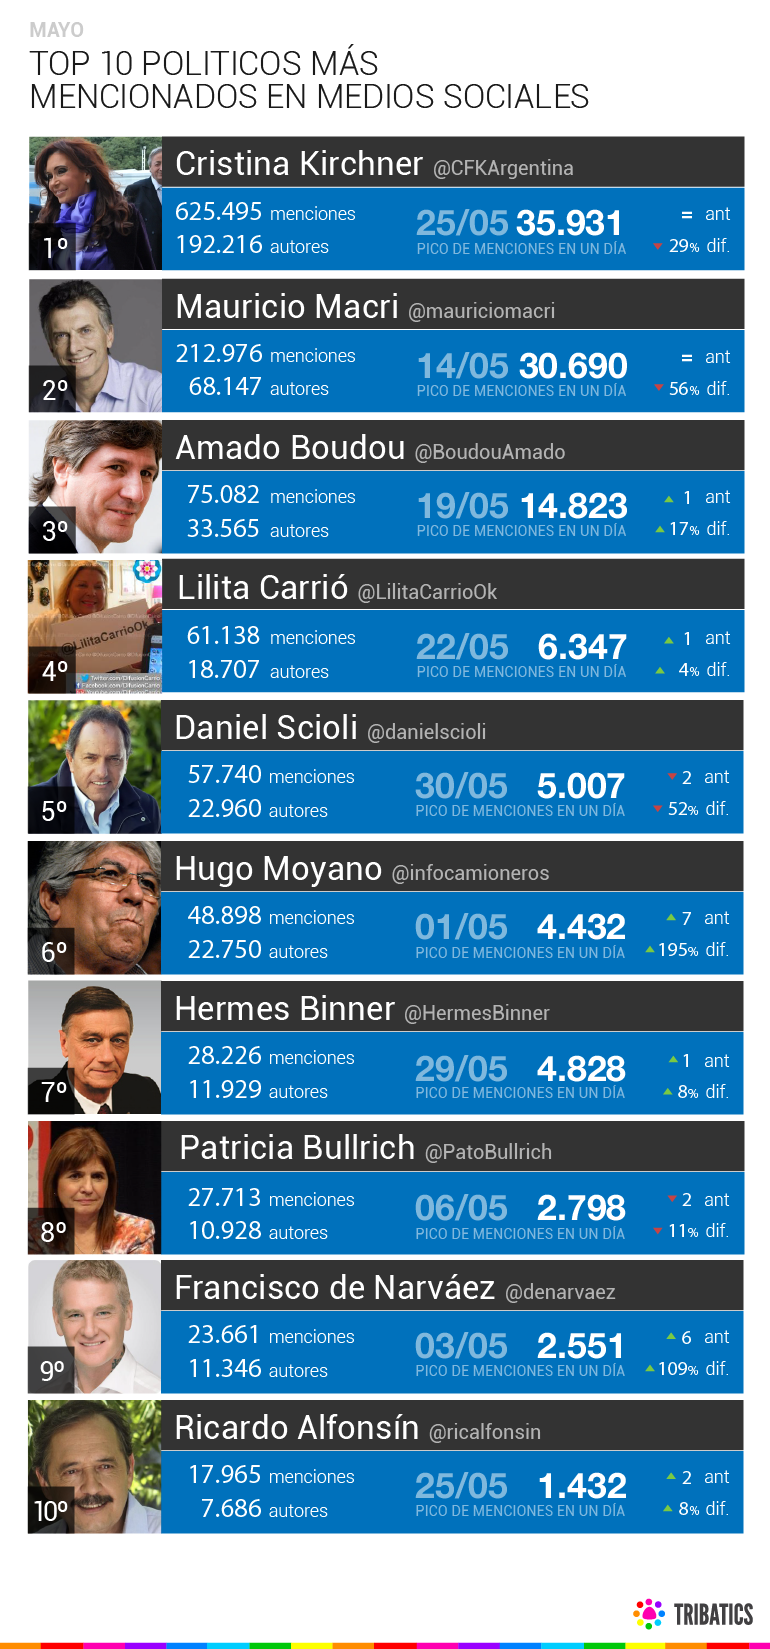 http://tribaticsblog.files.wordpress.com/2013/06/politicos-arg-2013_top-ten-mayo.png